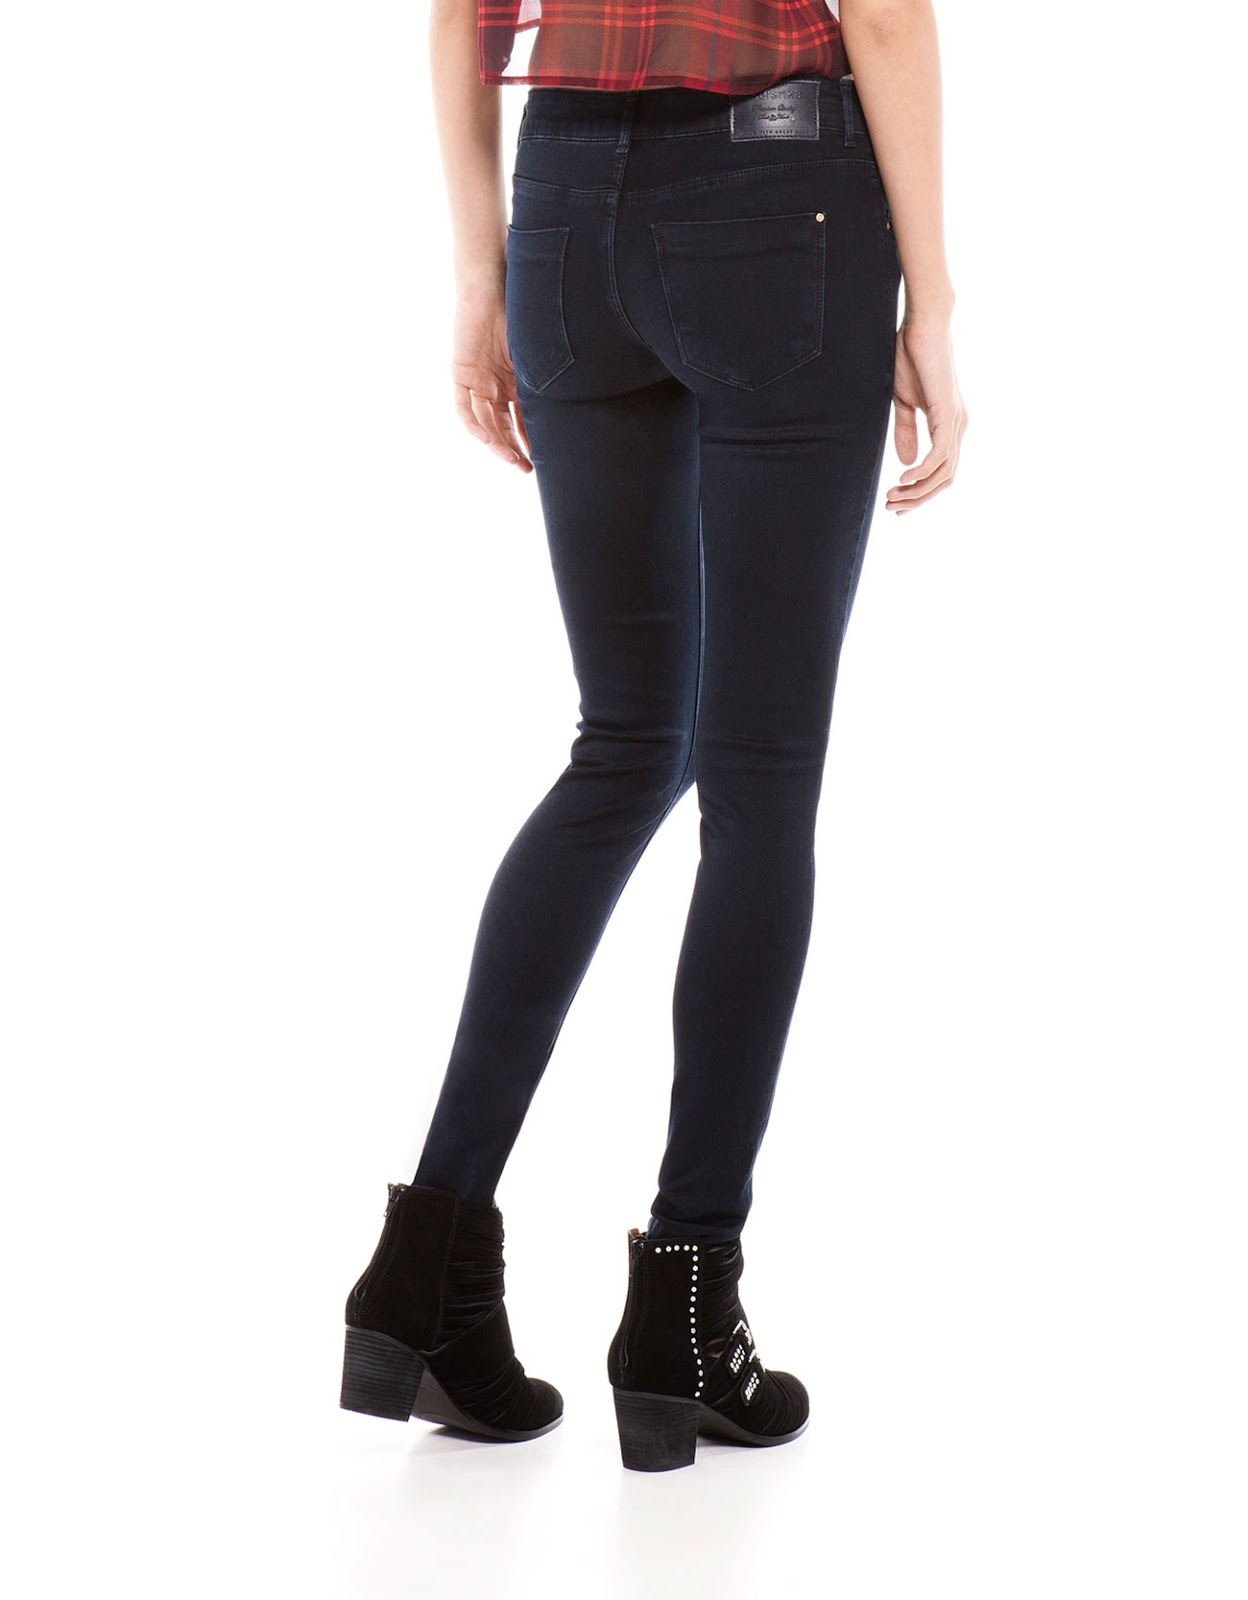 Jeans online shopping